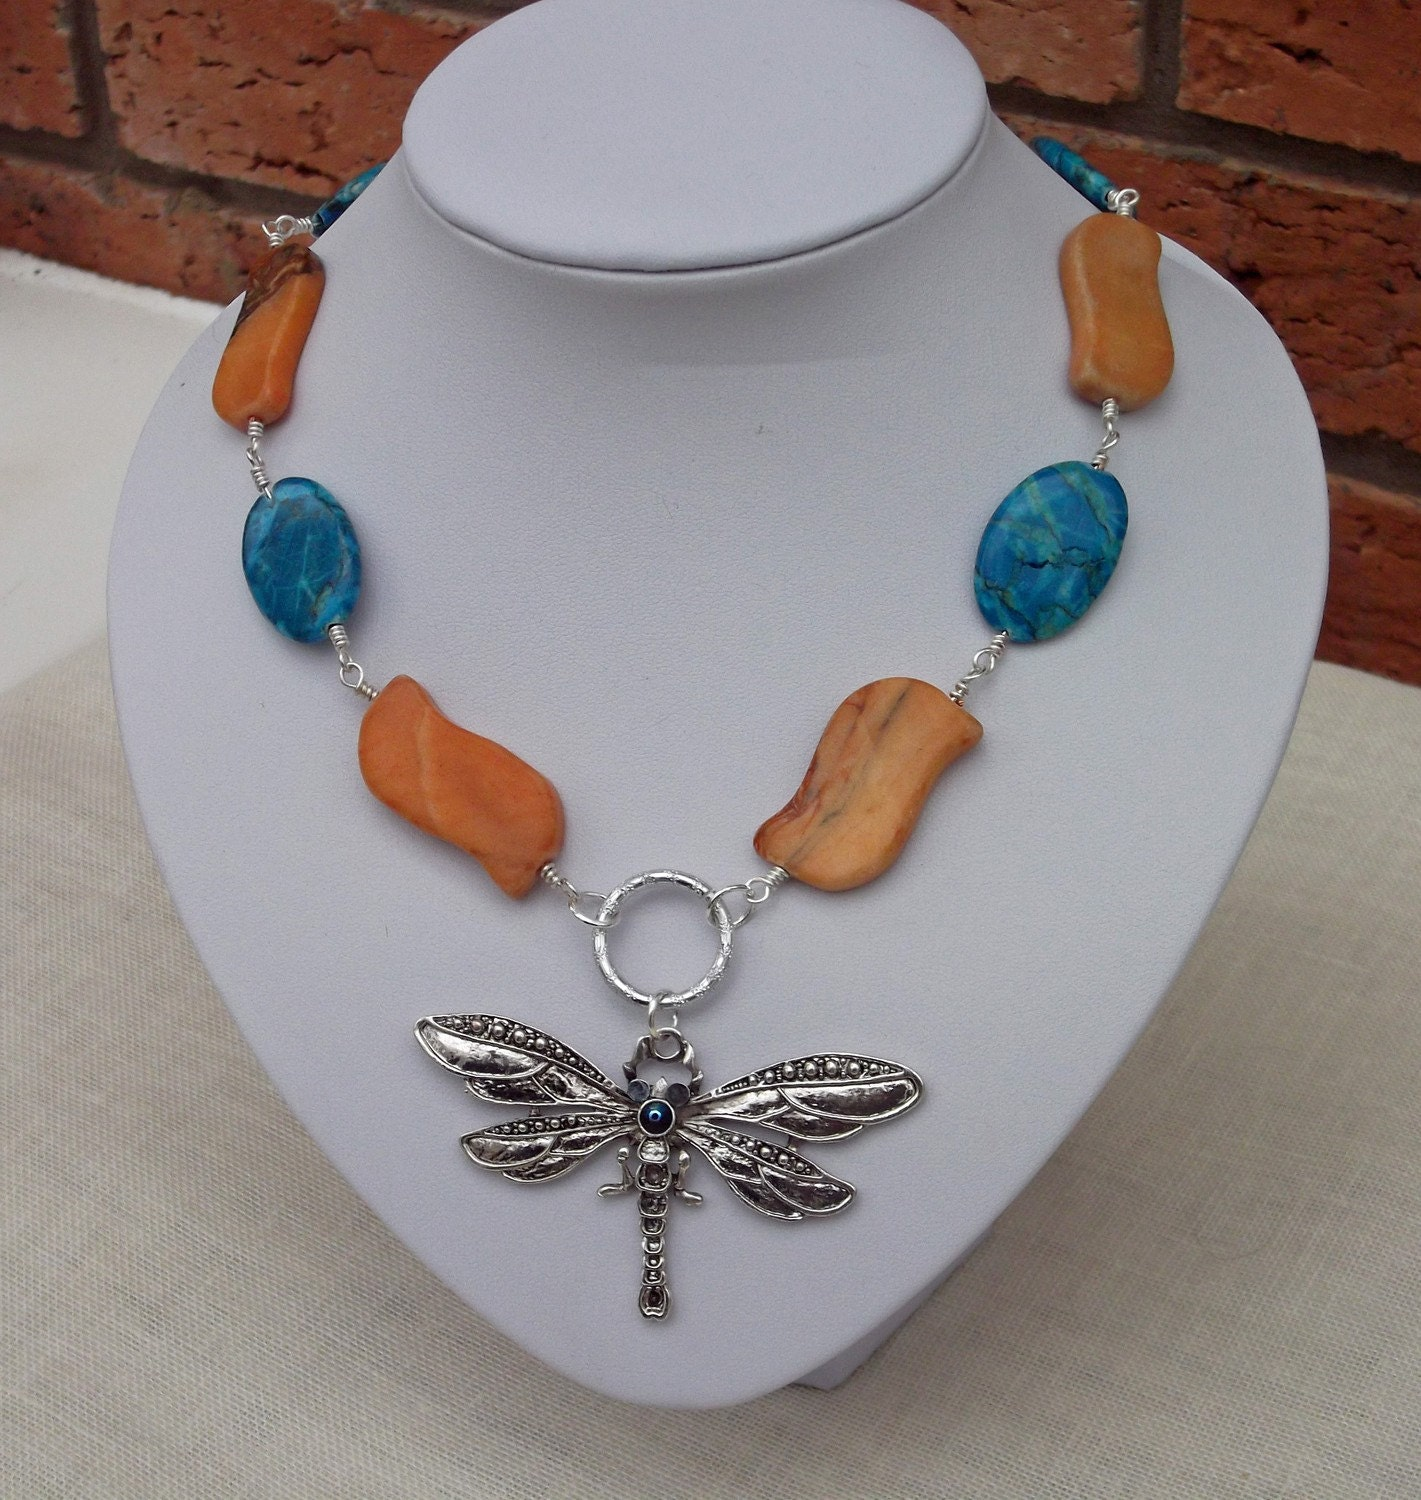 Turquoise and  Jasper Necklace with Dragonfly by evecollection from etsy.com